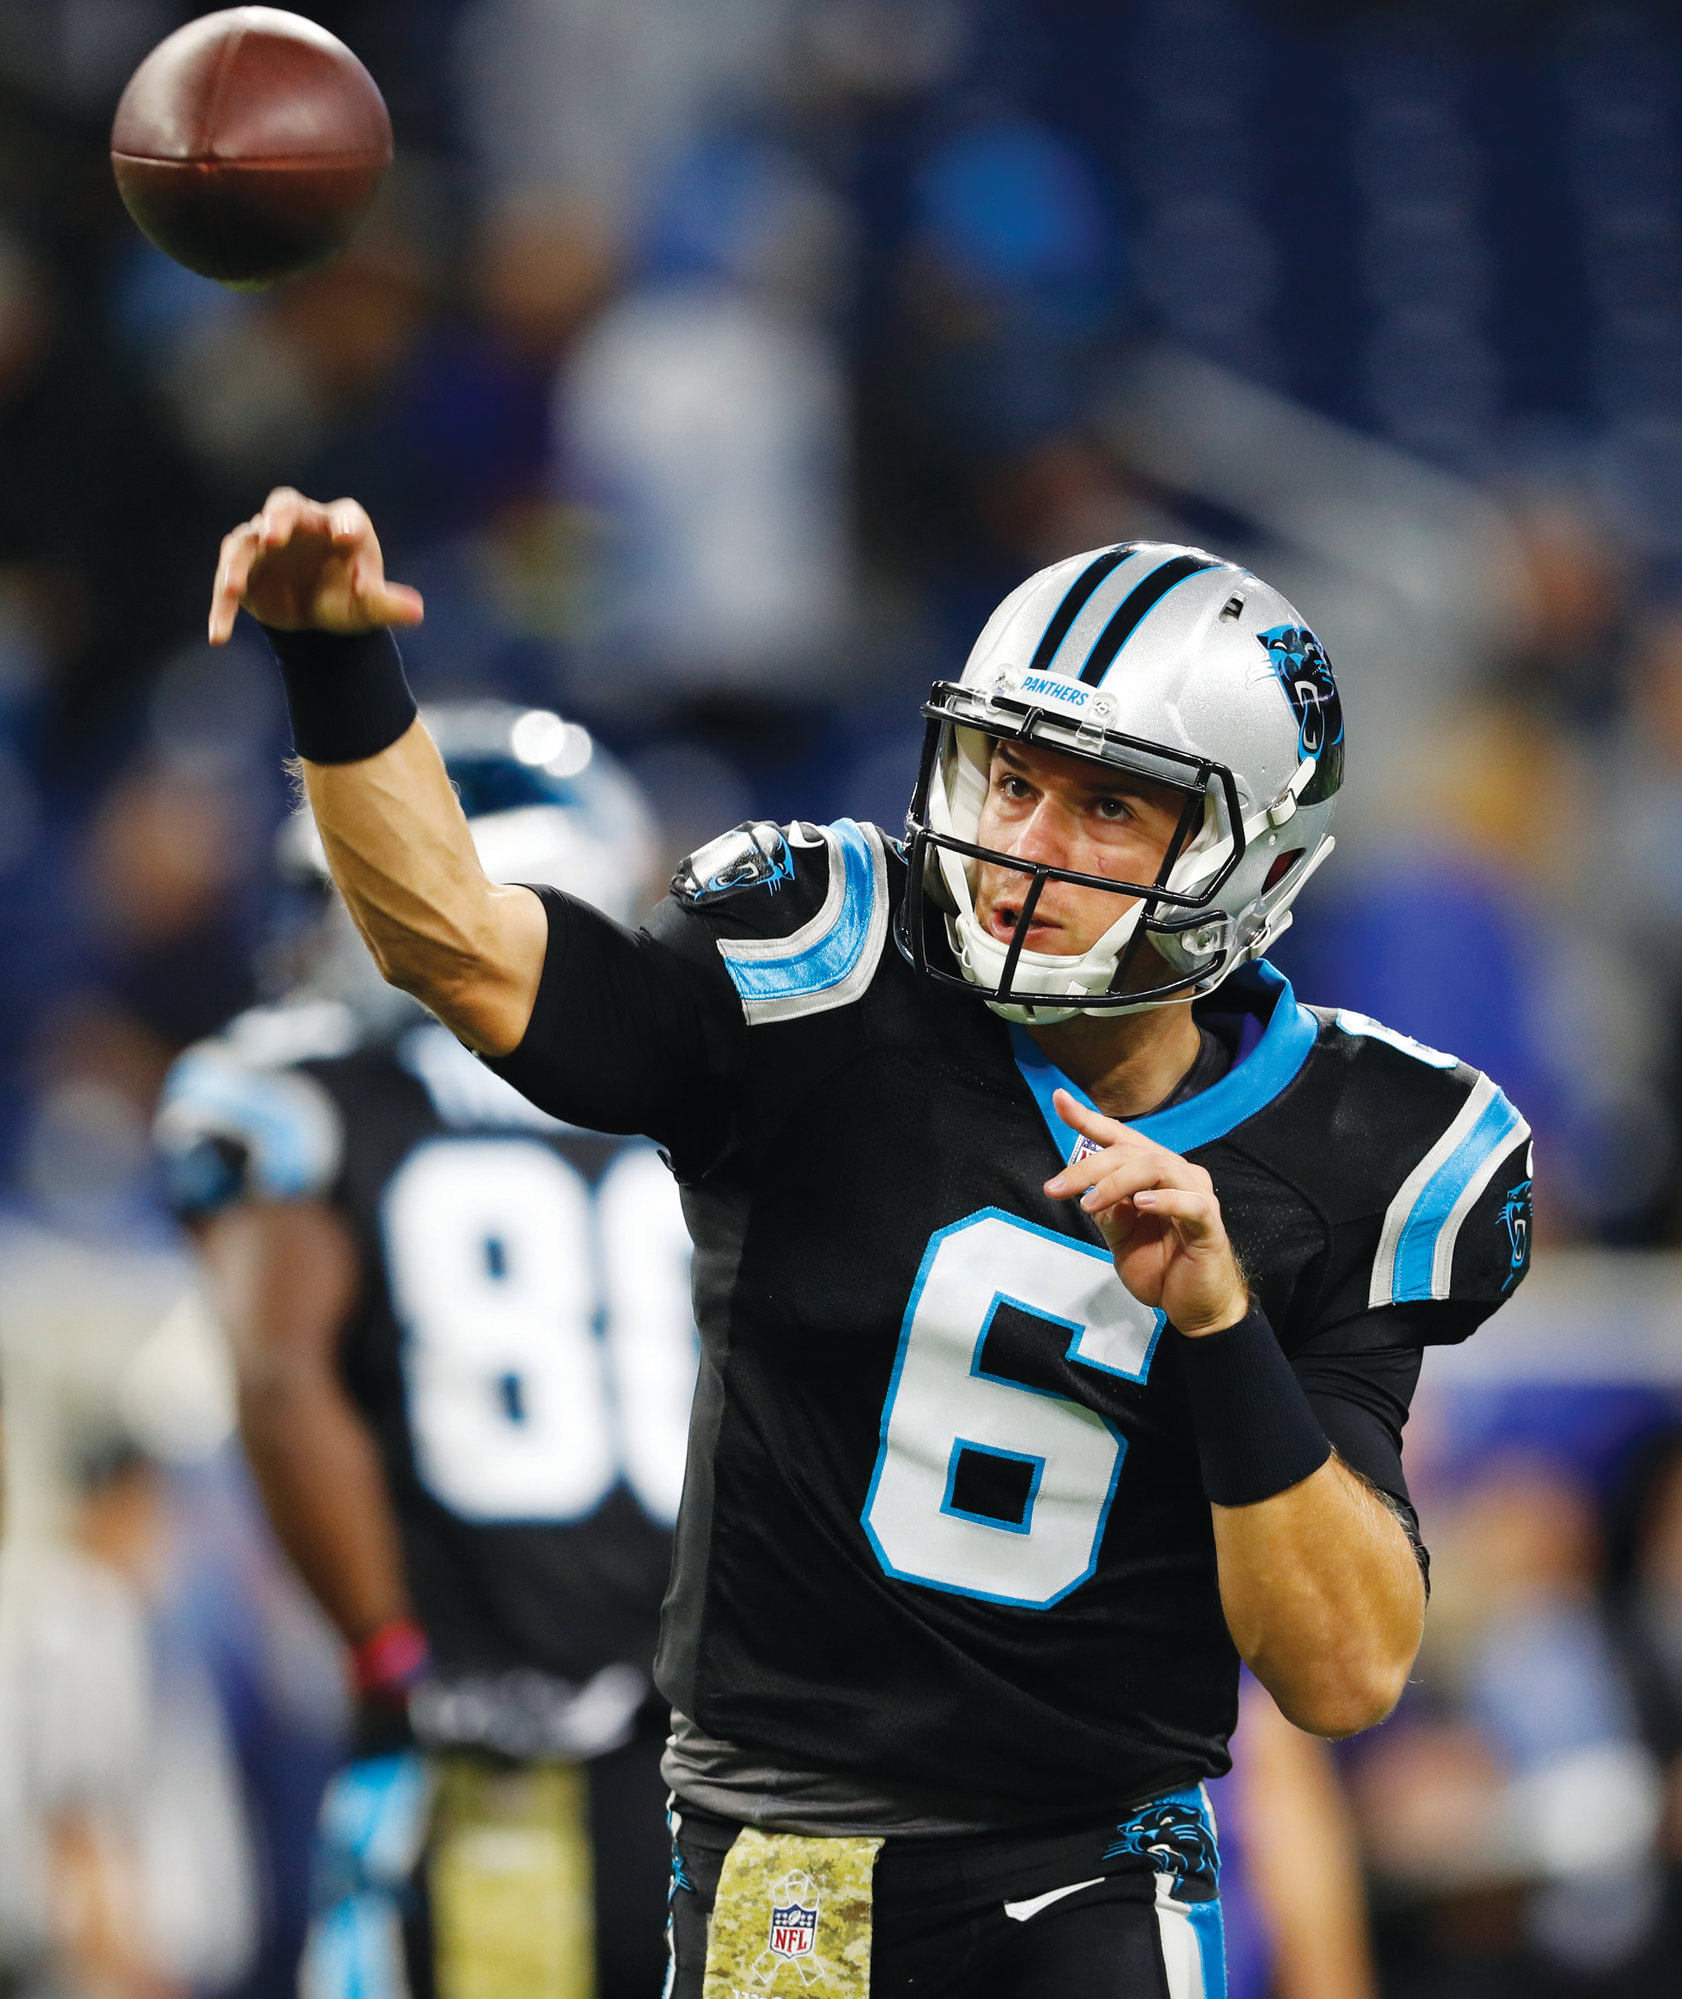 Panthers Qb Heinicke Out To Prove He S No Joke Vs Falcons The Sumter Item